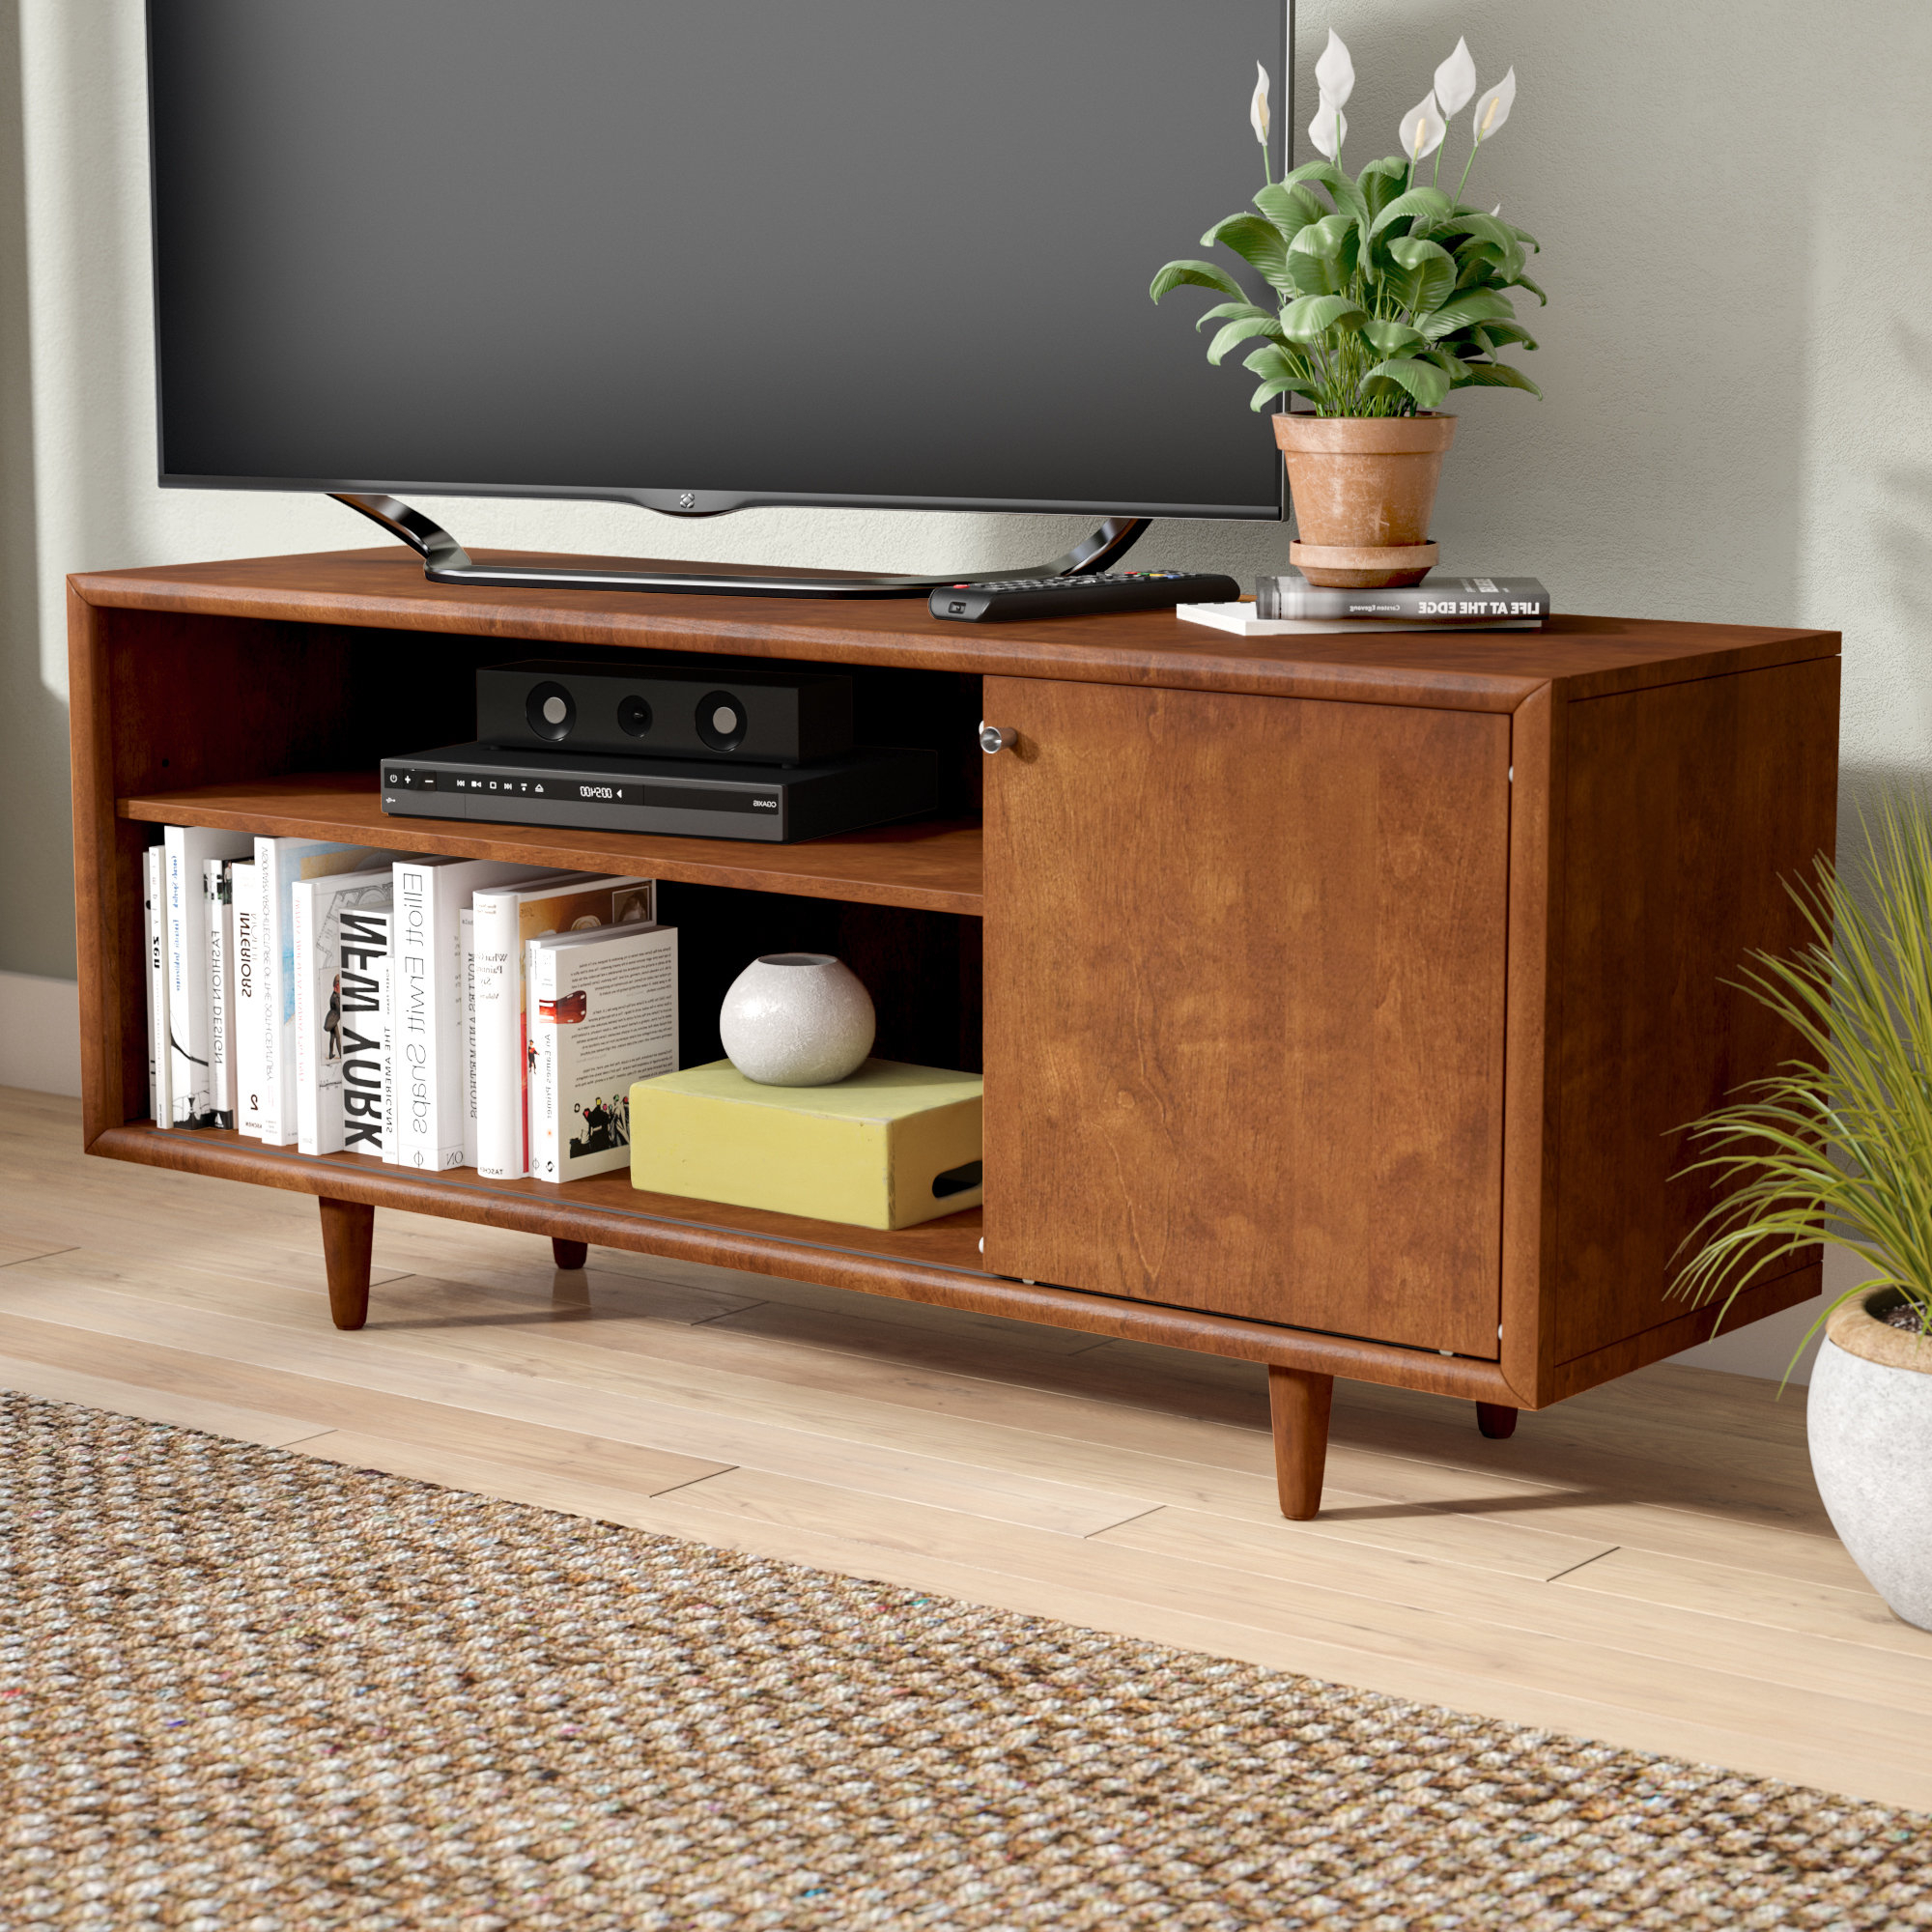 Tv Stand For 75 Inch Tv | Wayfair With Regard To Laurent 50 Inch Tv Stands (Gallery 14 of 20)